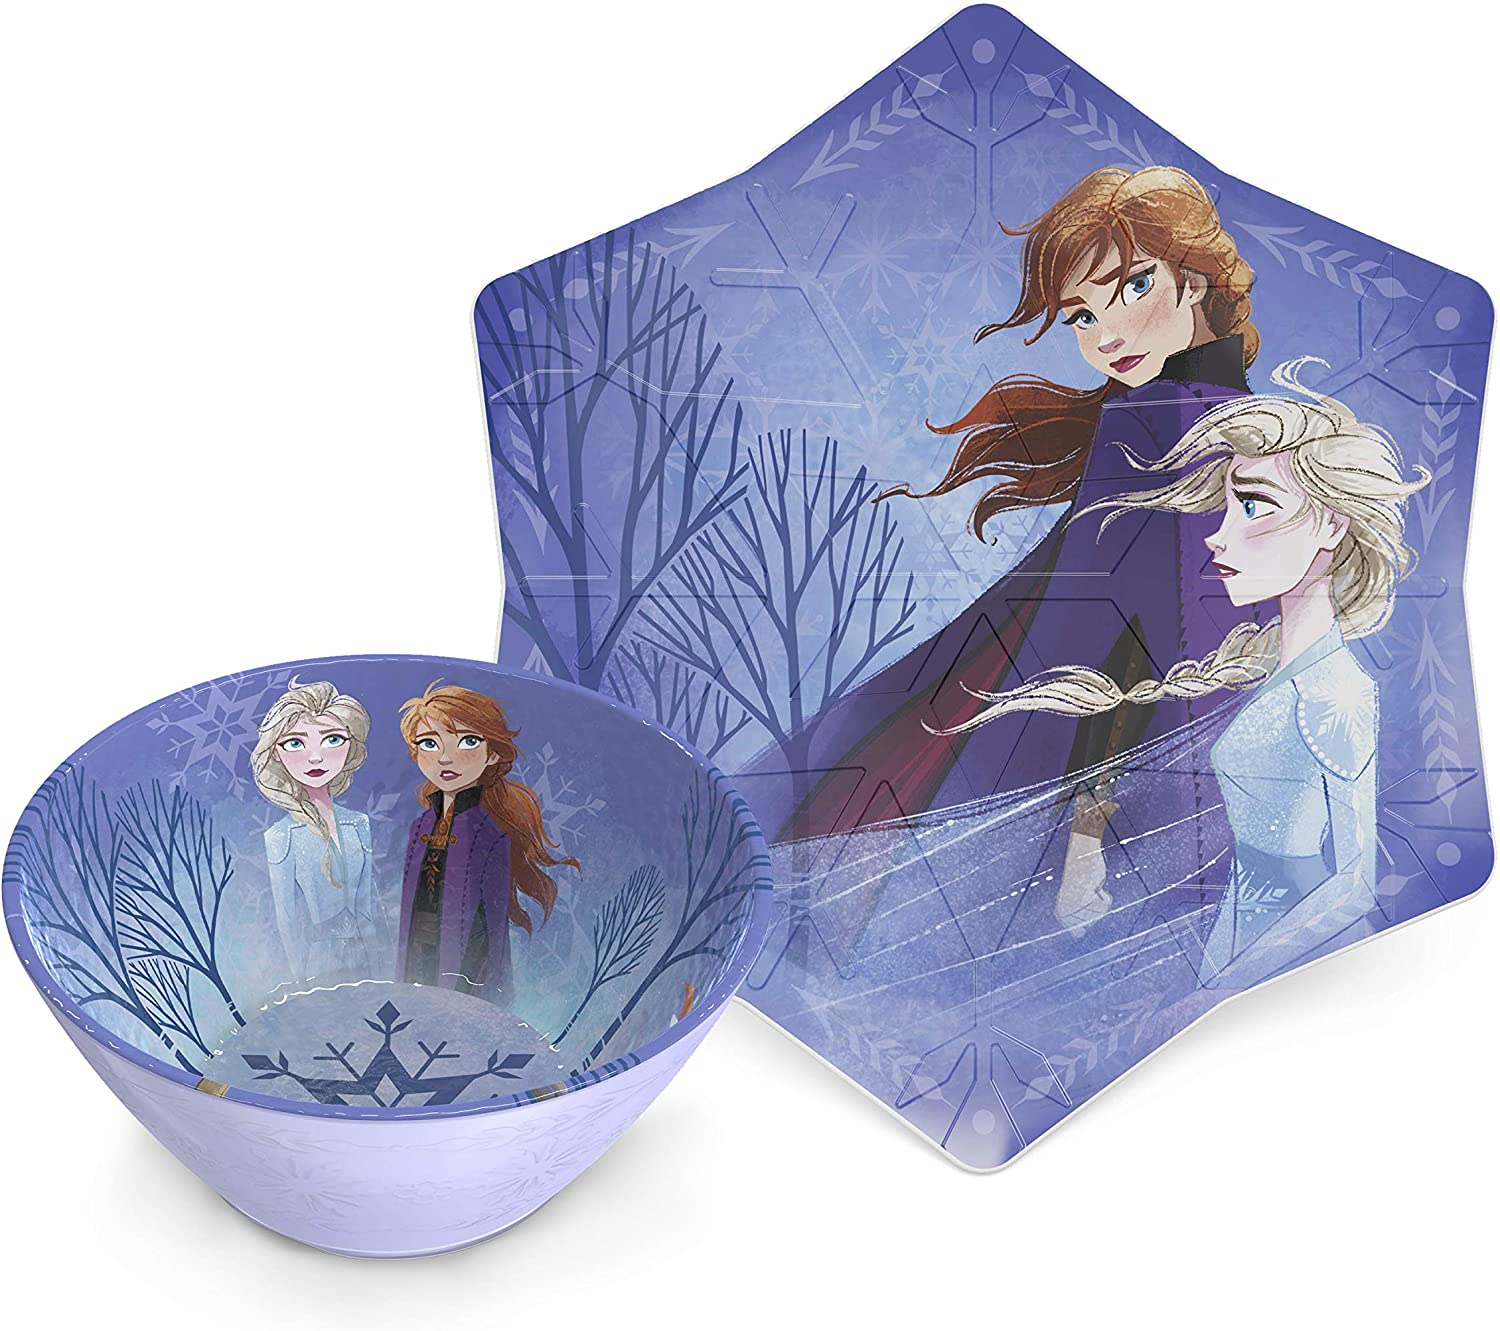 Zak Designs Disney Frozen II Movie Kids Embossed Dinnerware Set, Including 9in Melamine Plate and 6in Bowl Set, Durable and Break Resistant Plate and Bowl Makes Mealtime Fun (Elsa & Anna, BPA-Free)